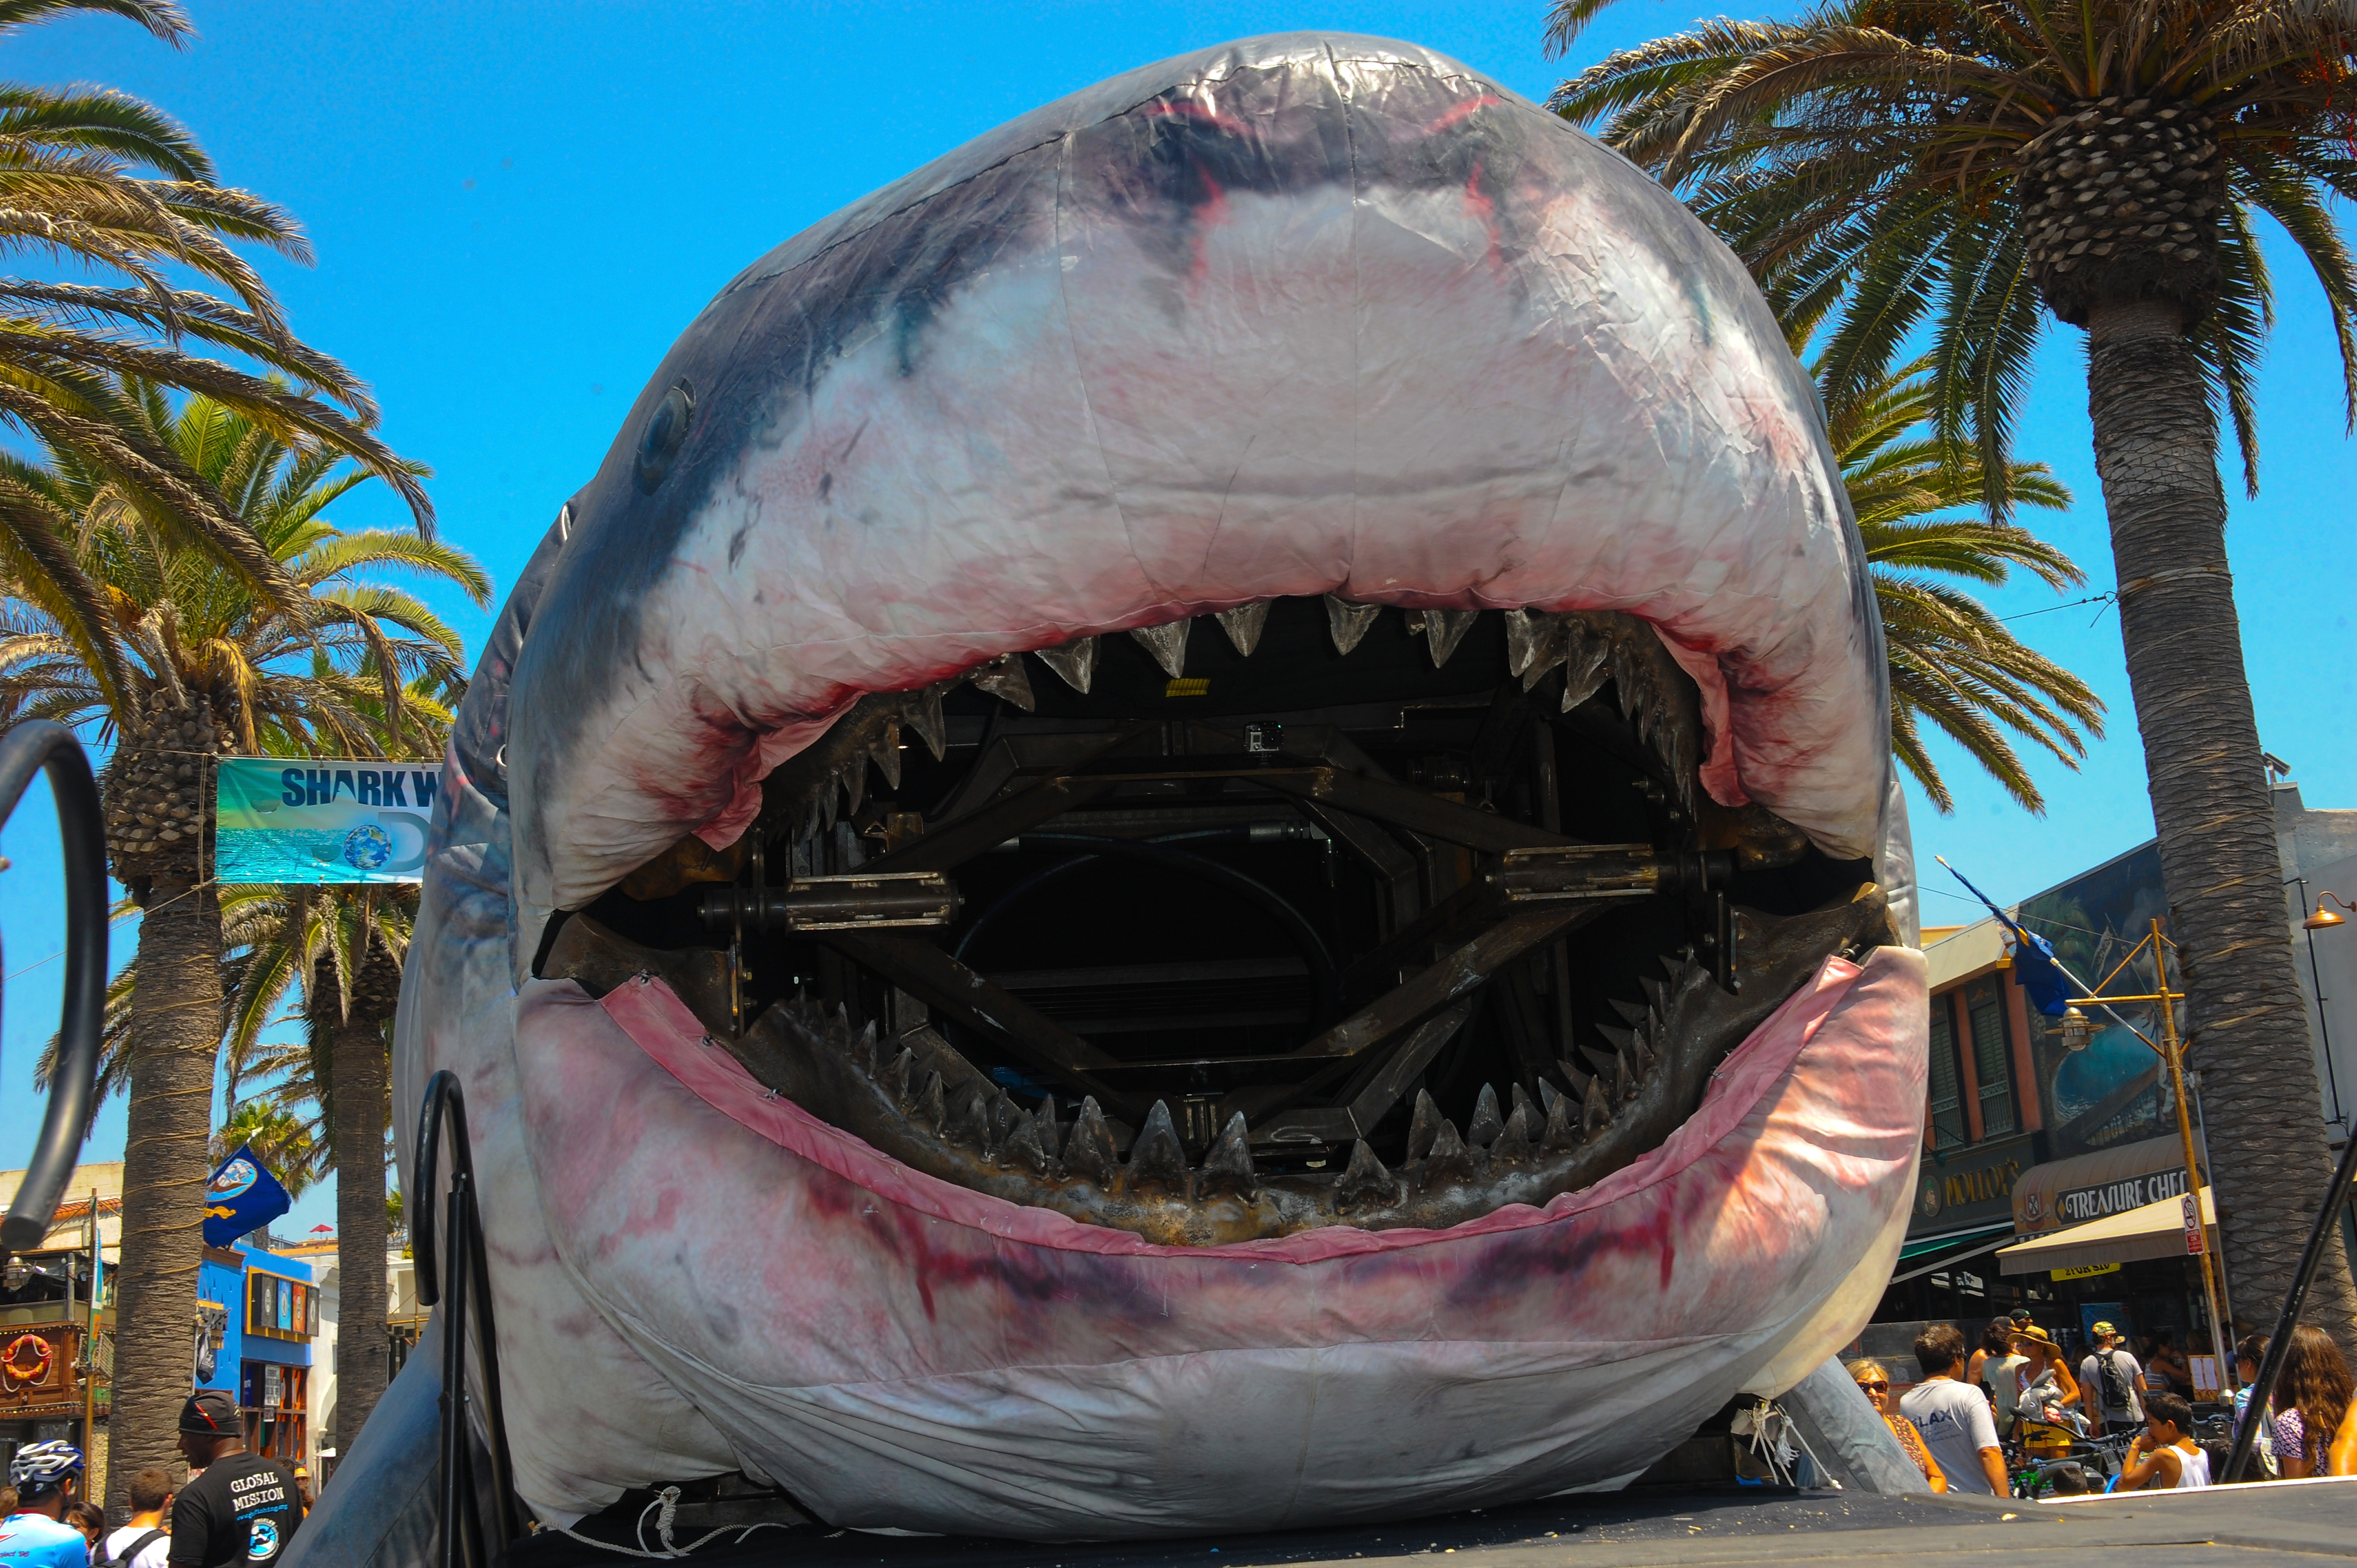 HERMOSA BEACH, CA - AUGUST 10:  Sharkzilla on display at Discovery Channel's Day 2 of  Shark Week Kickoff  with FinFest 2014 held at the Hermosa Beach Pier on August 10, 2014 in Hermosa Beach, California.  (Photo by Albert L. Ortega/Getty Images)